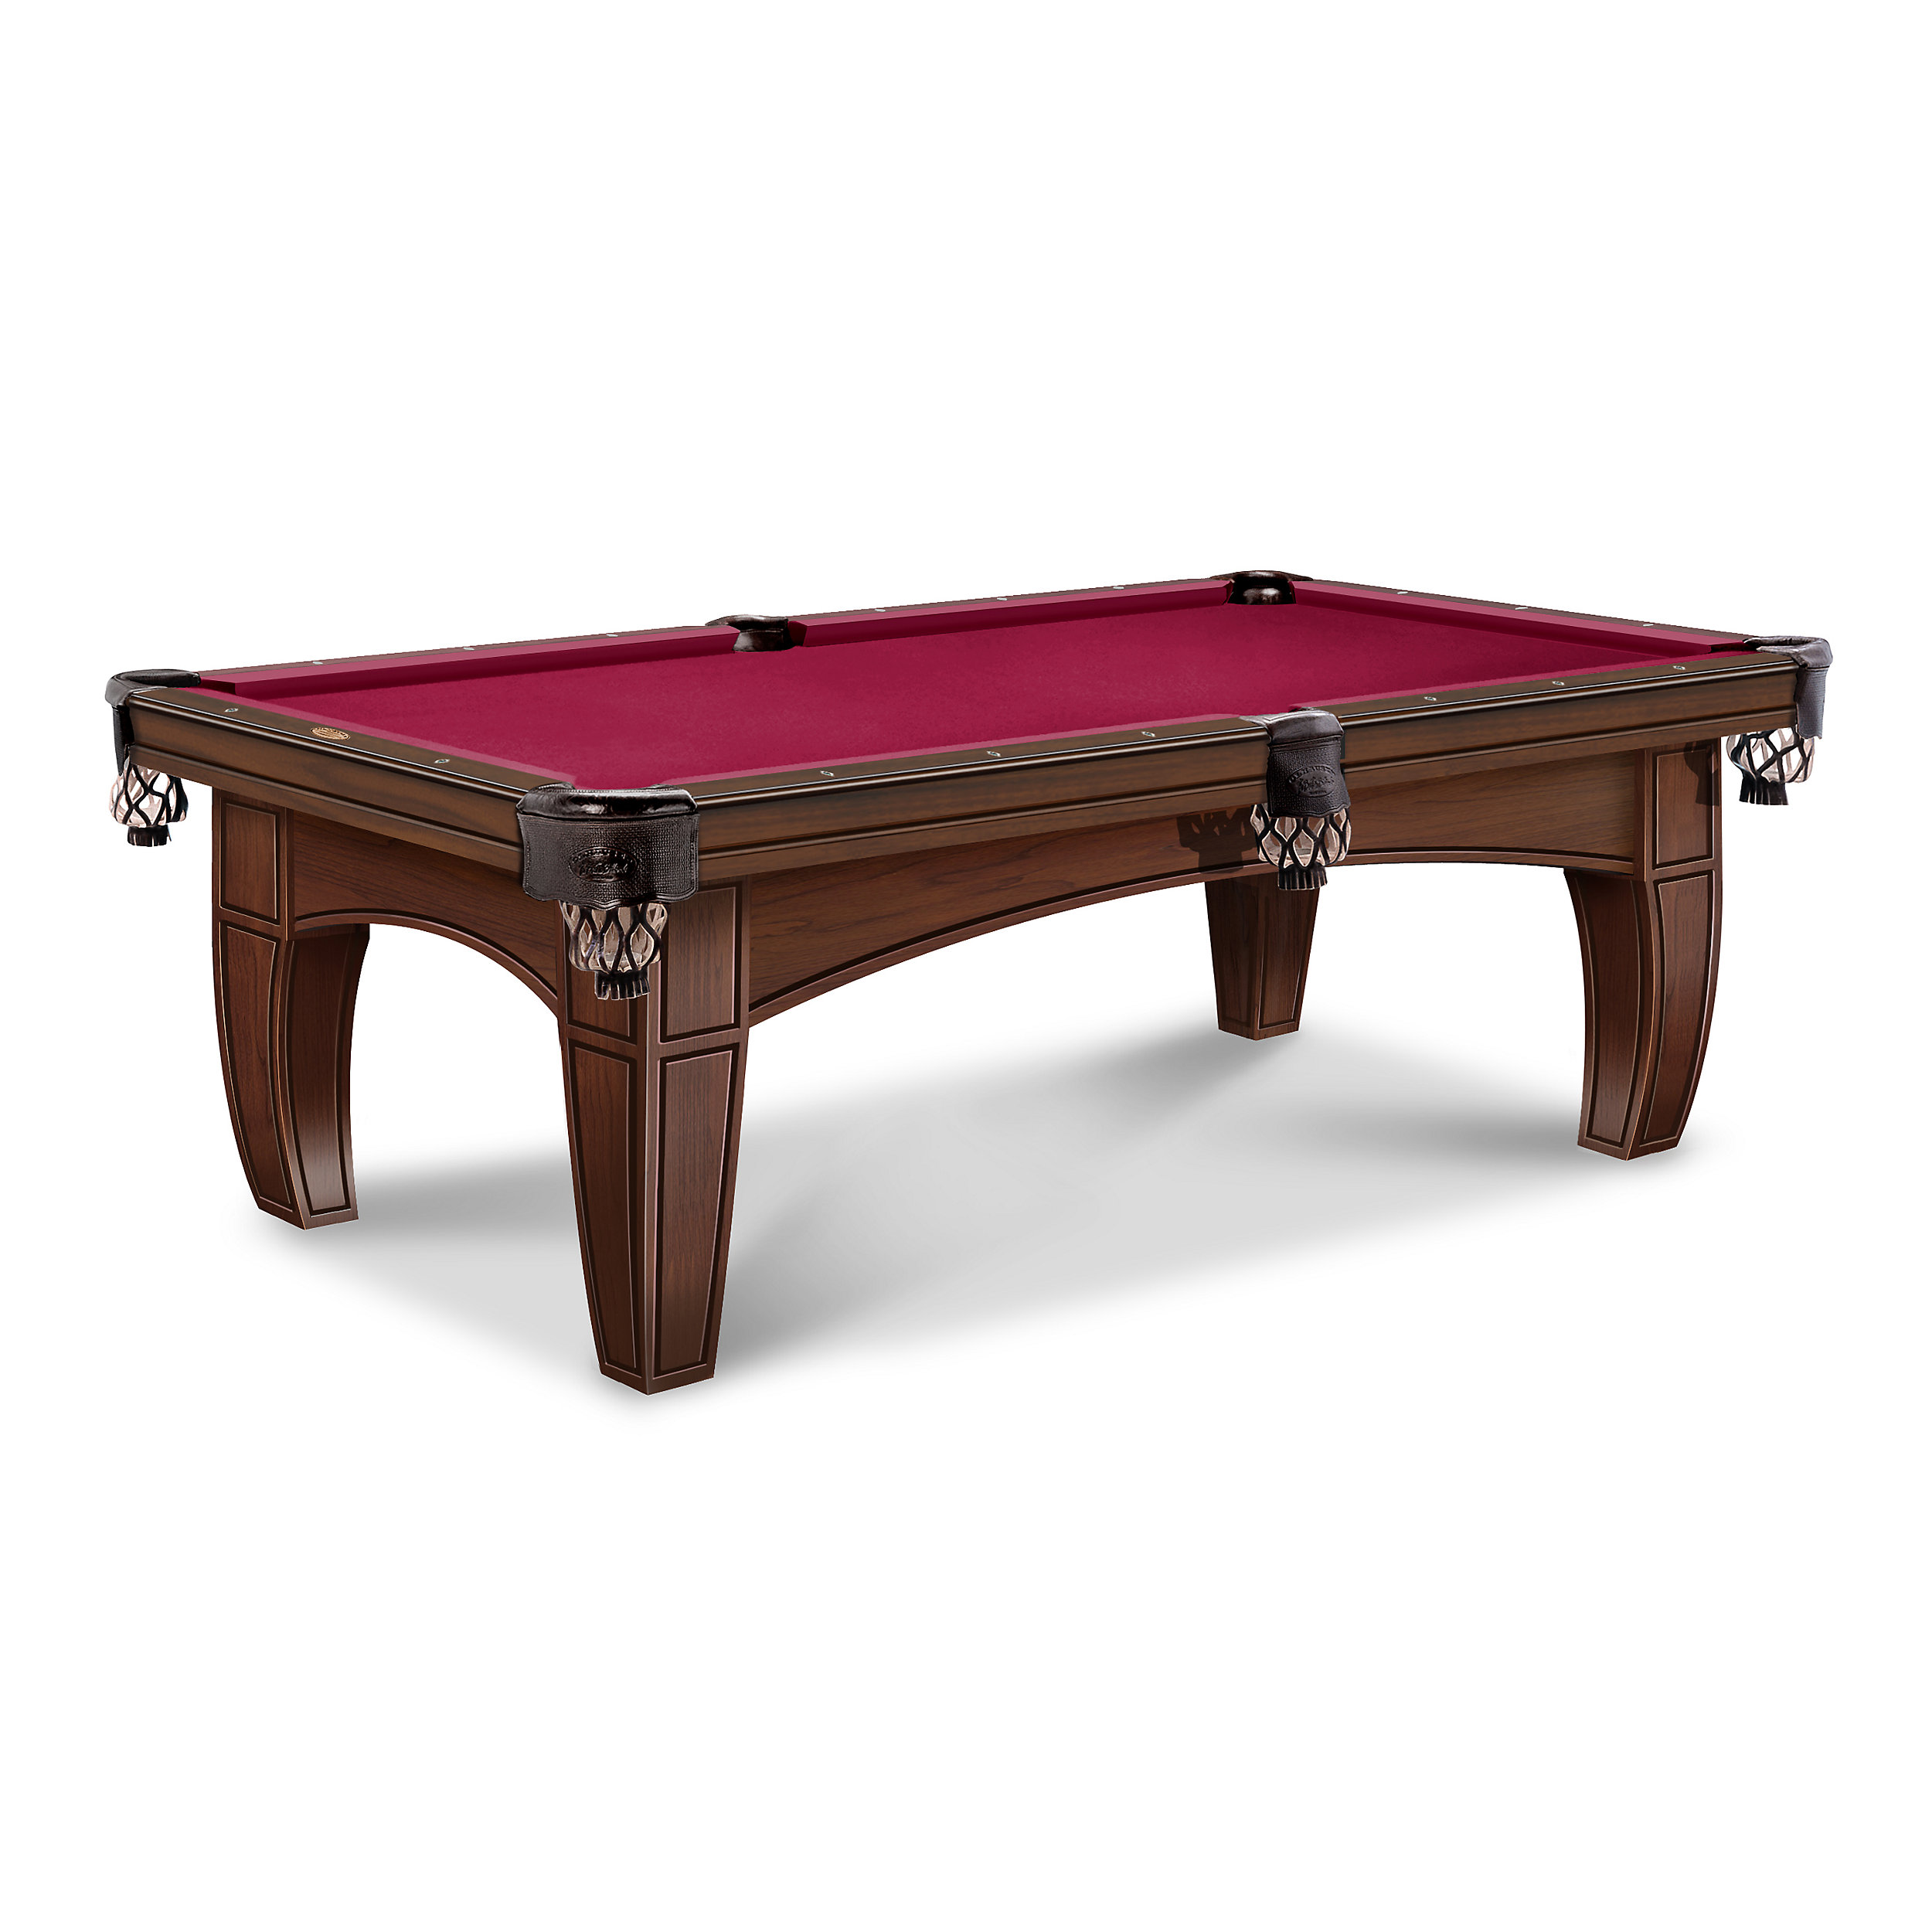 Wood Billiard Table Pool Table With Accessories - Pool table shop near me